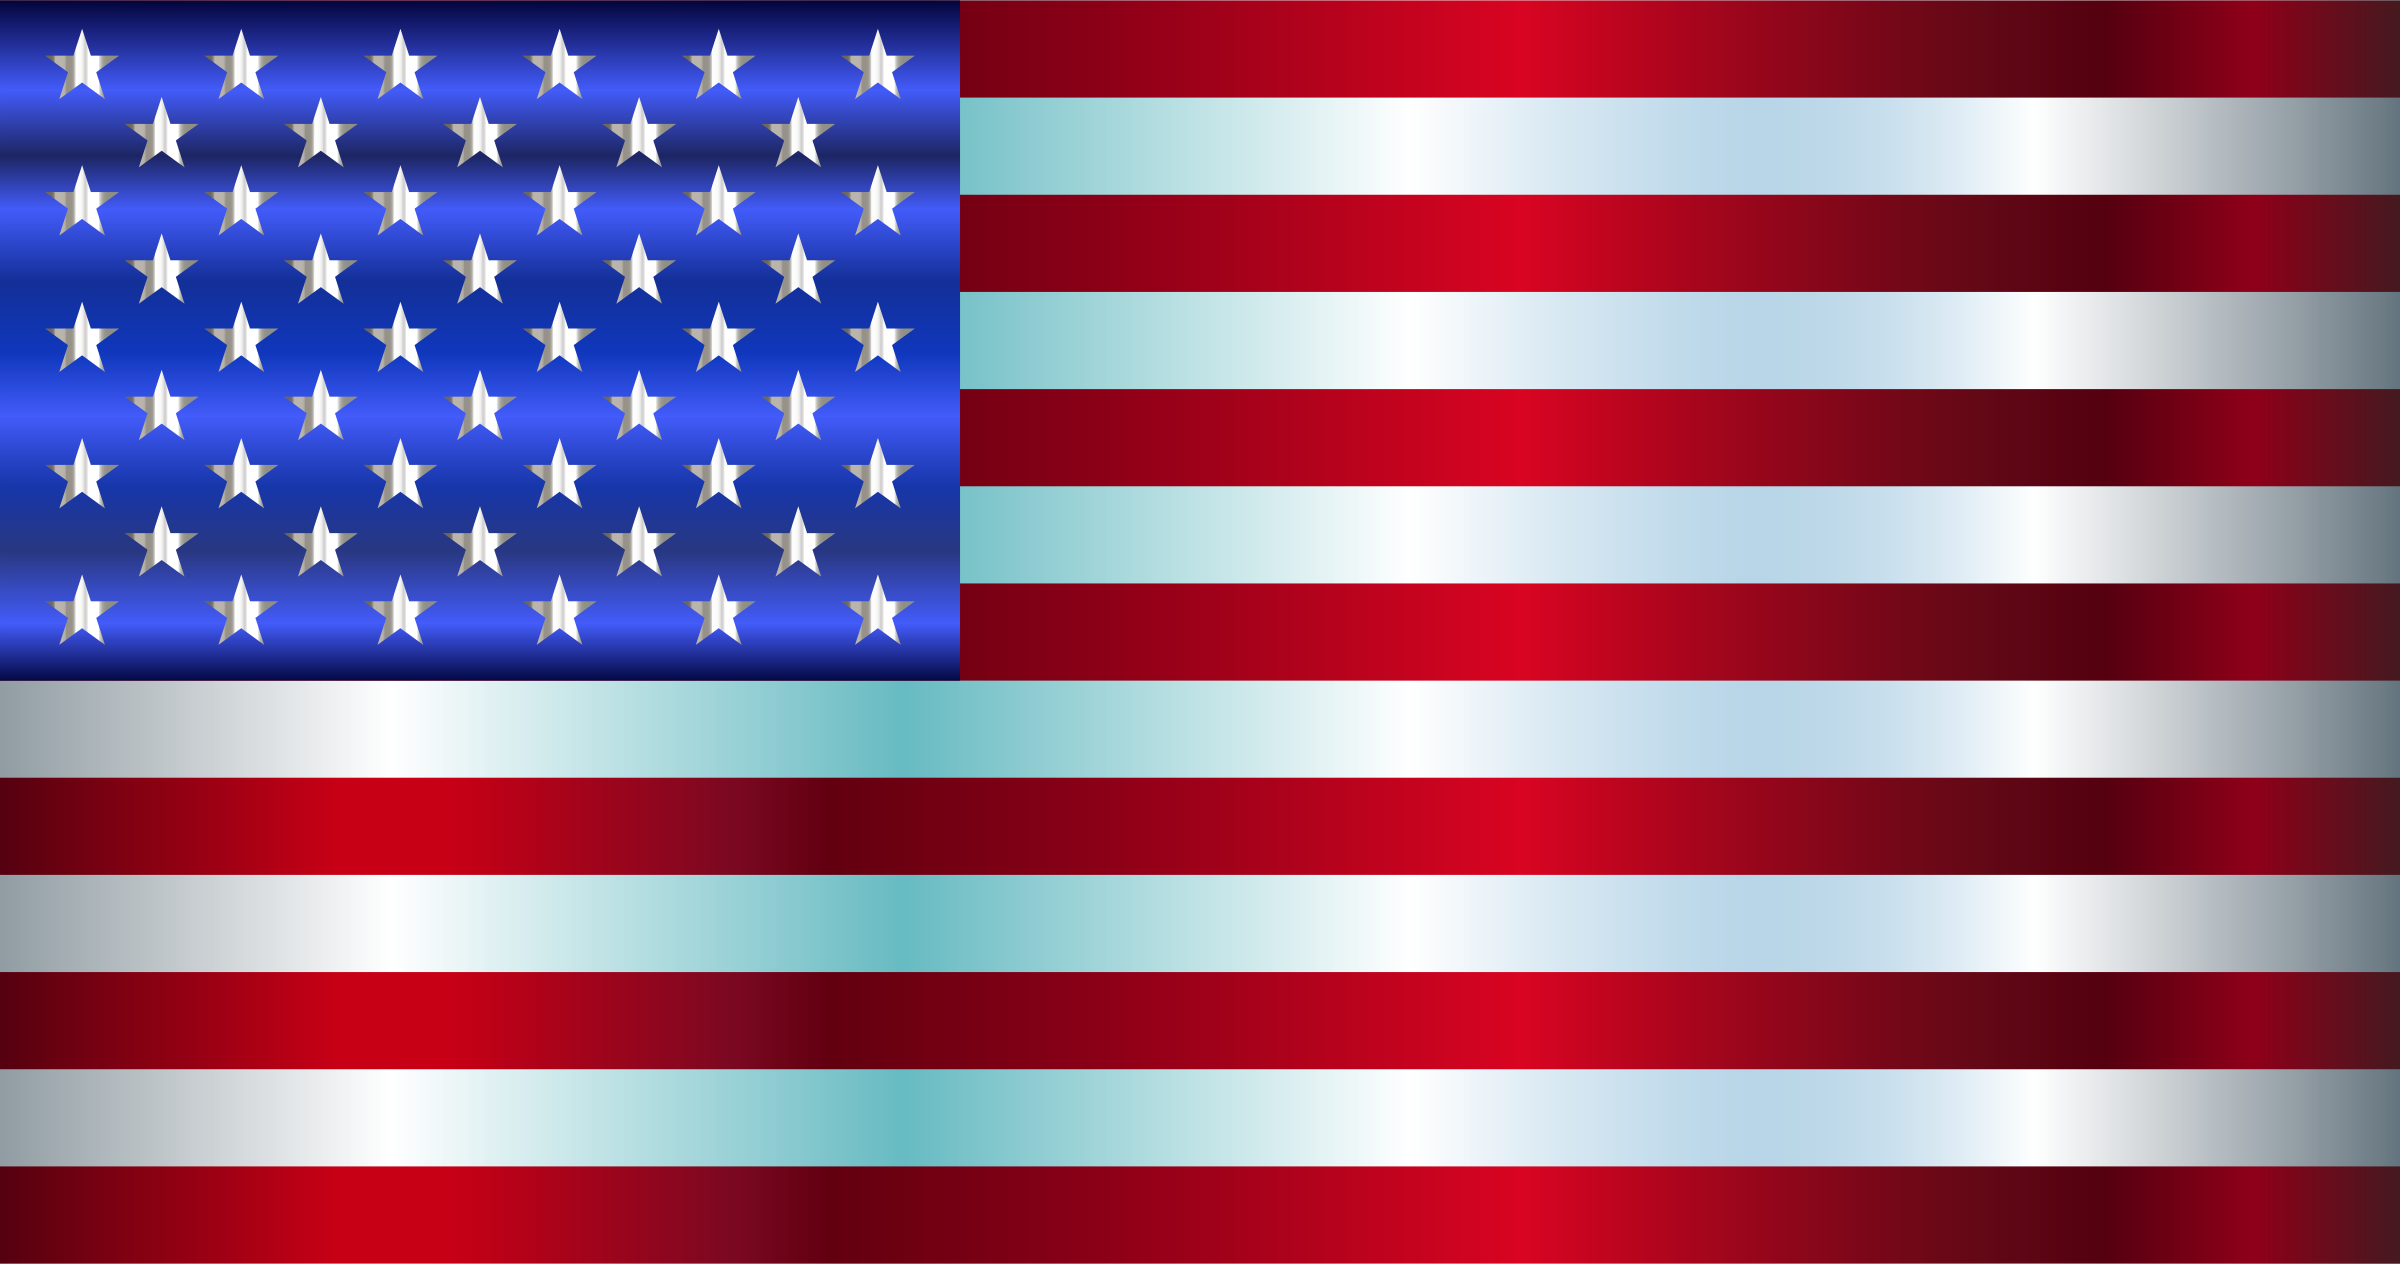 American Flag Enhanced 2 by GDJ